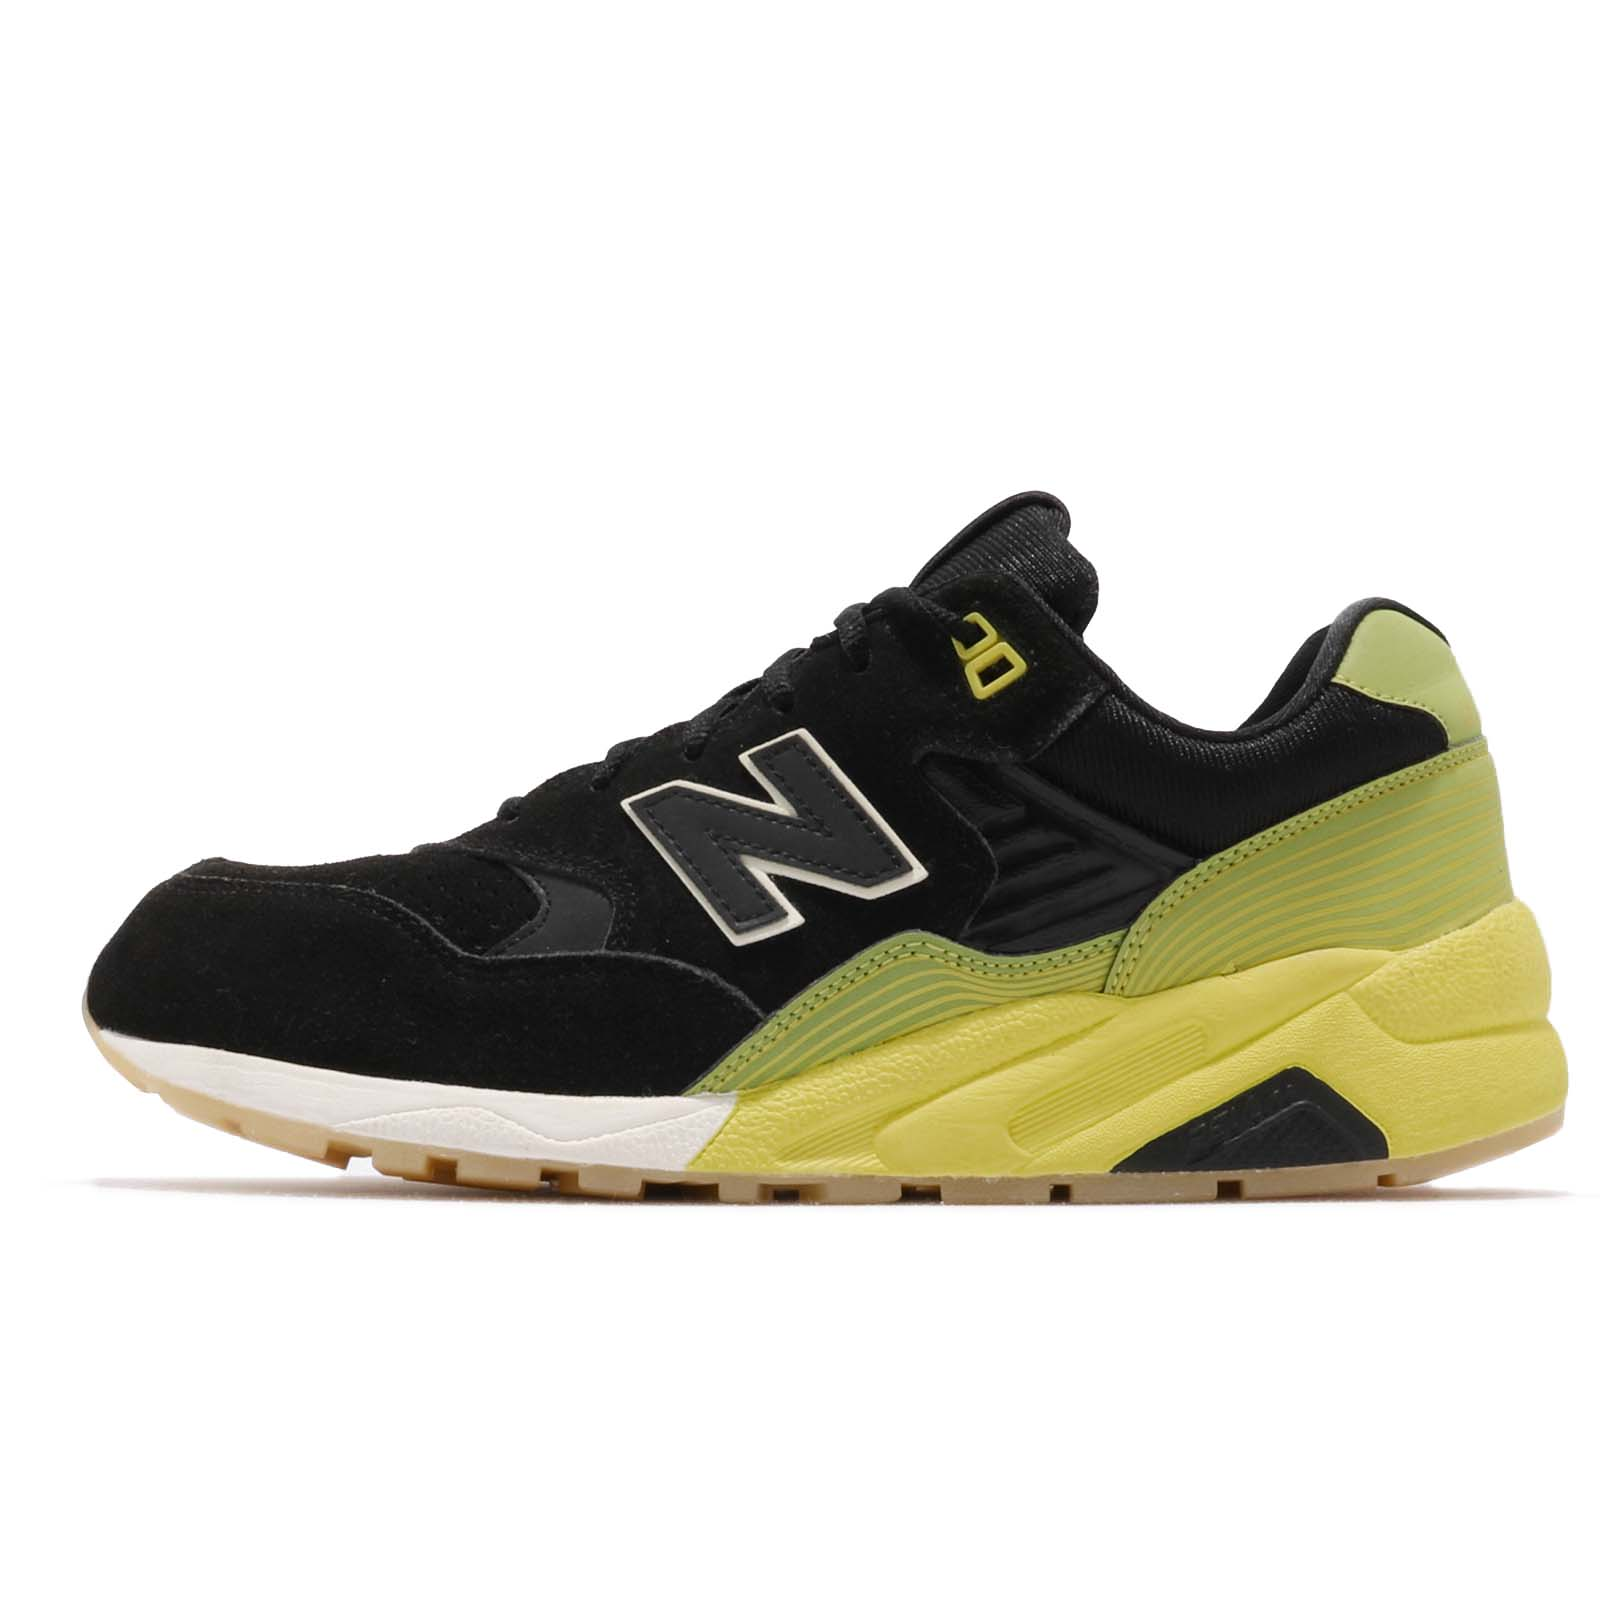 new balance mrt580ug d black yellow suede mens running